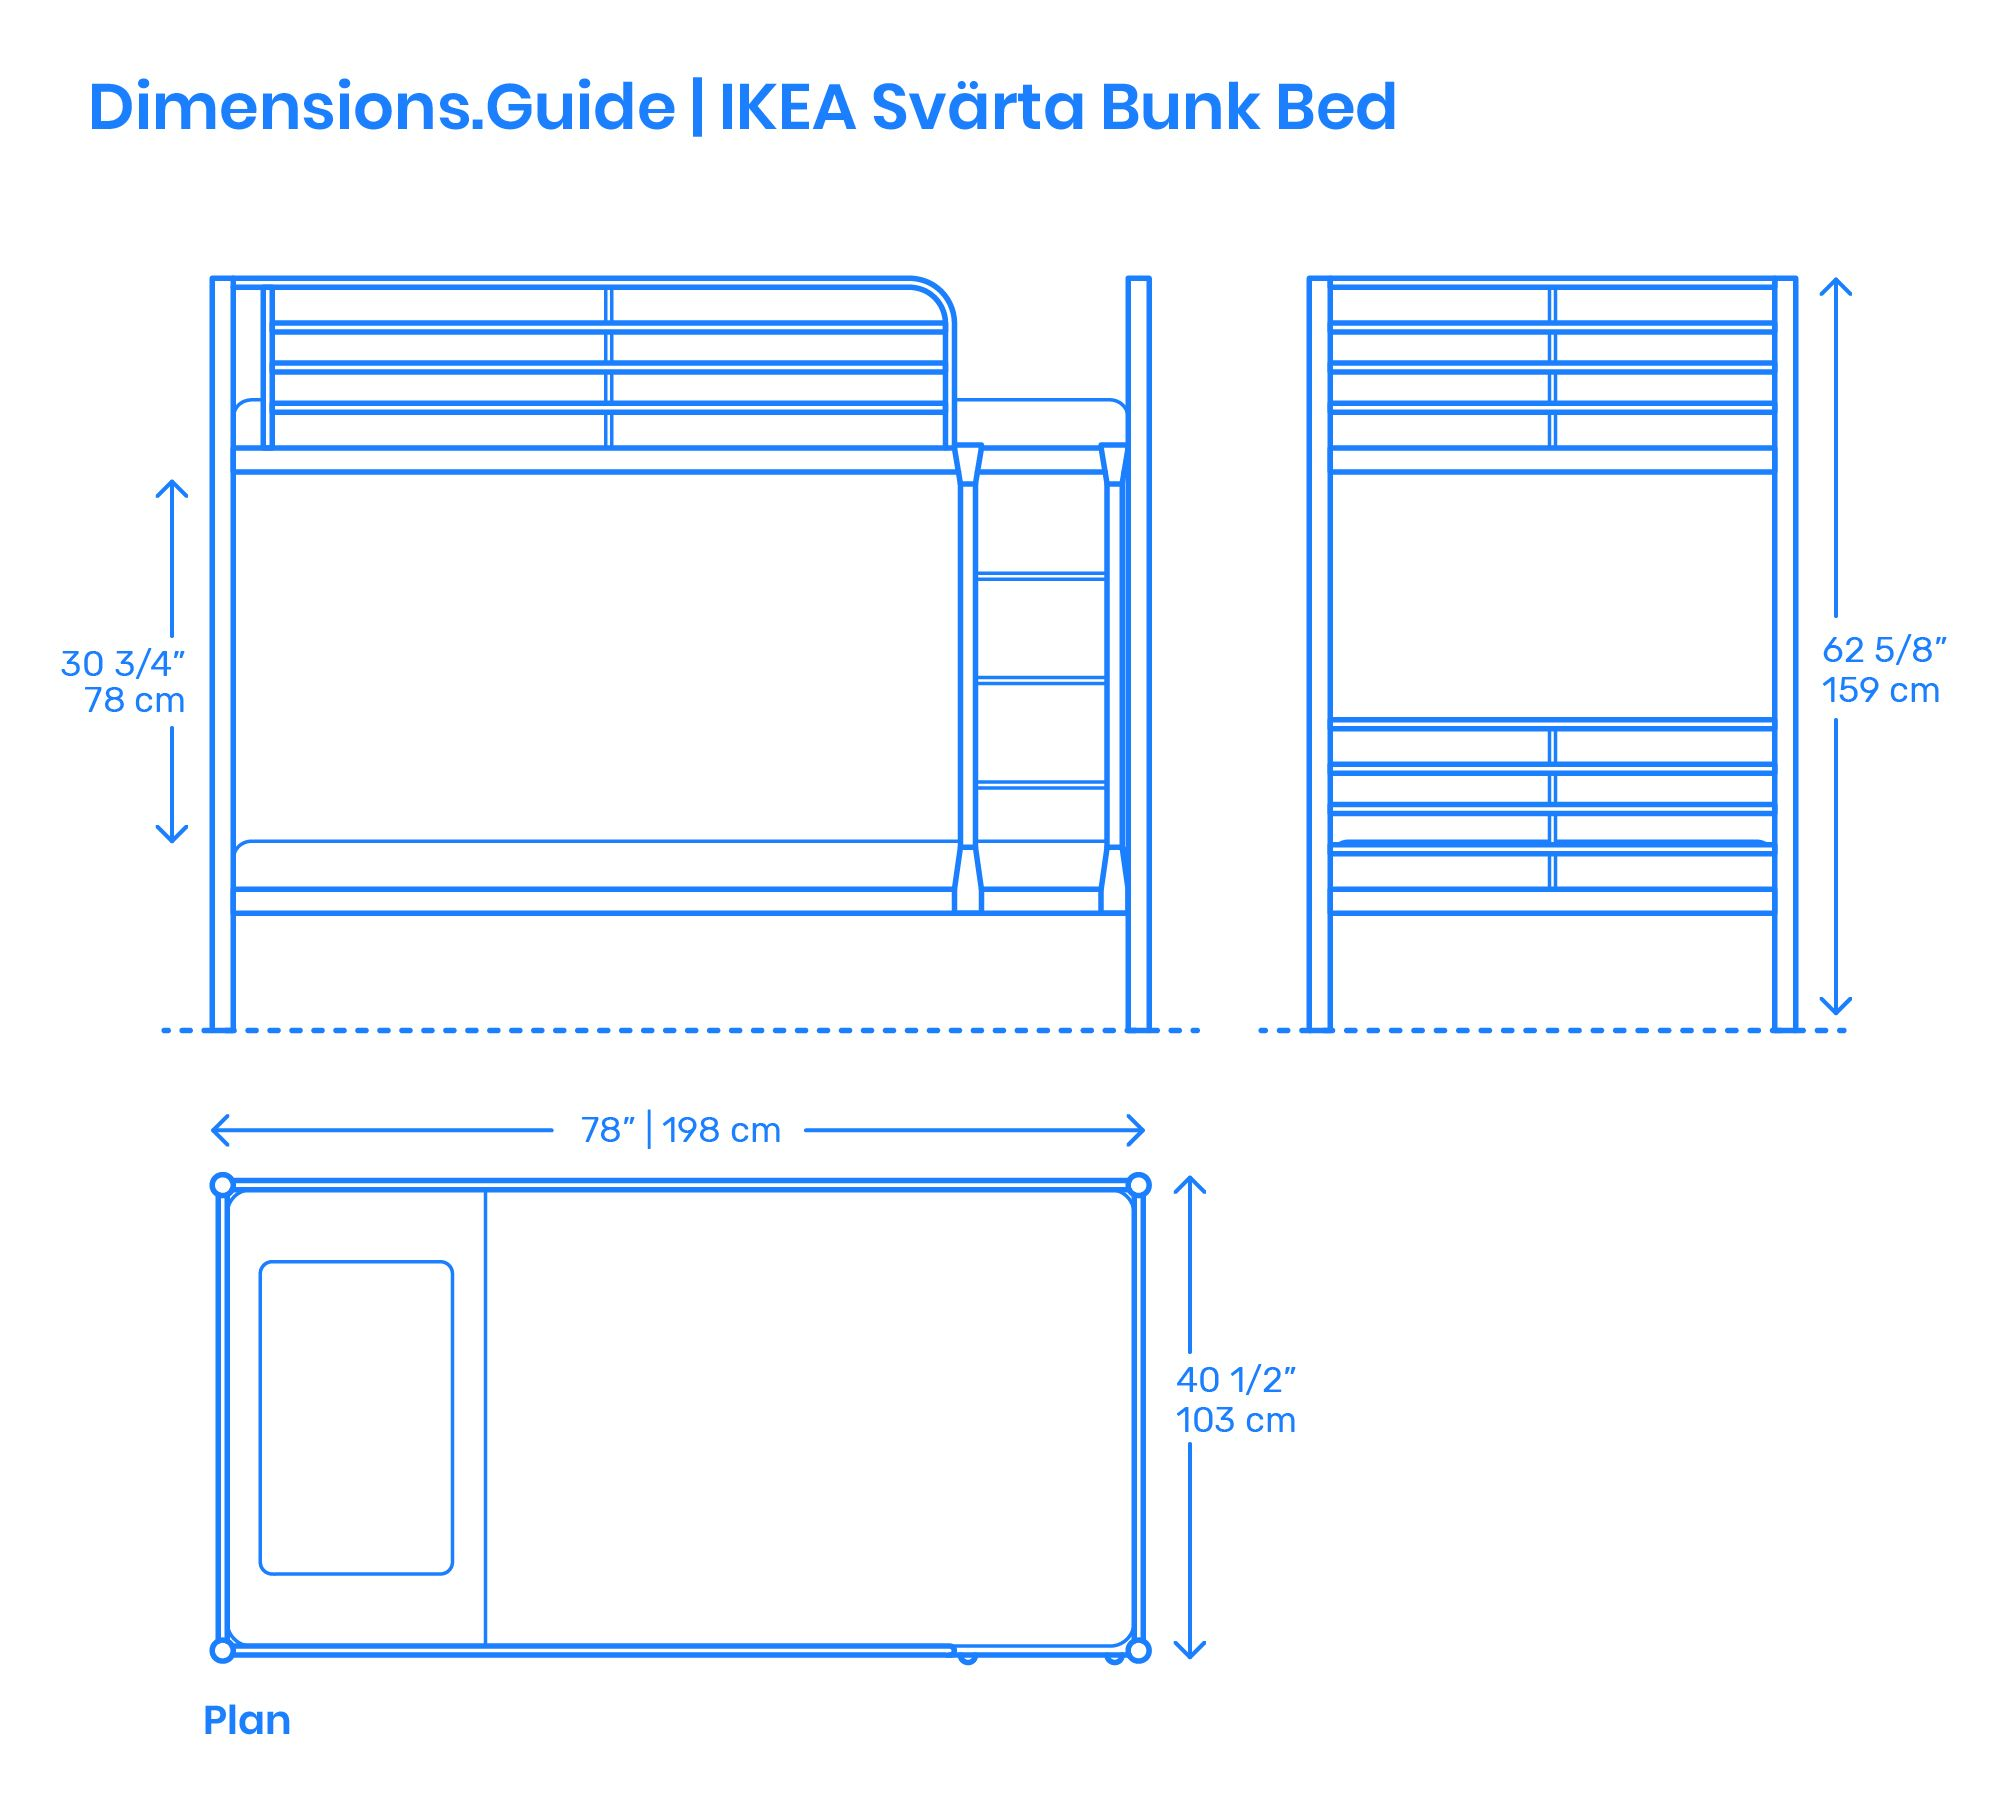 The IKEA Svärta Bunk Bed is a streamlined steel framed